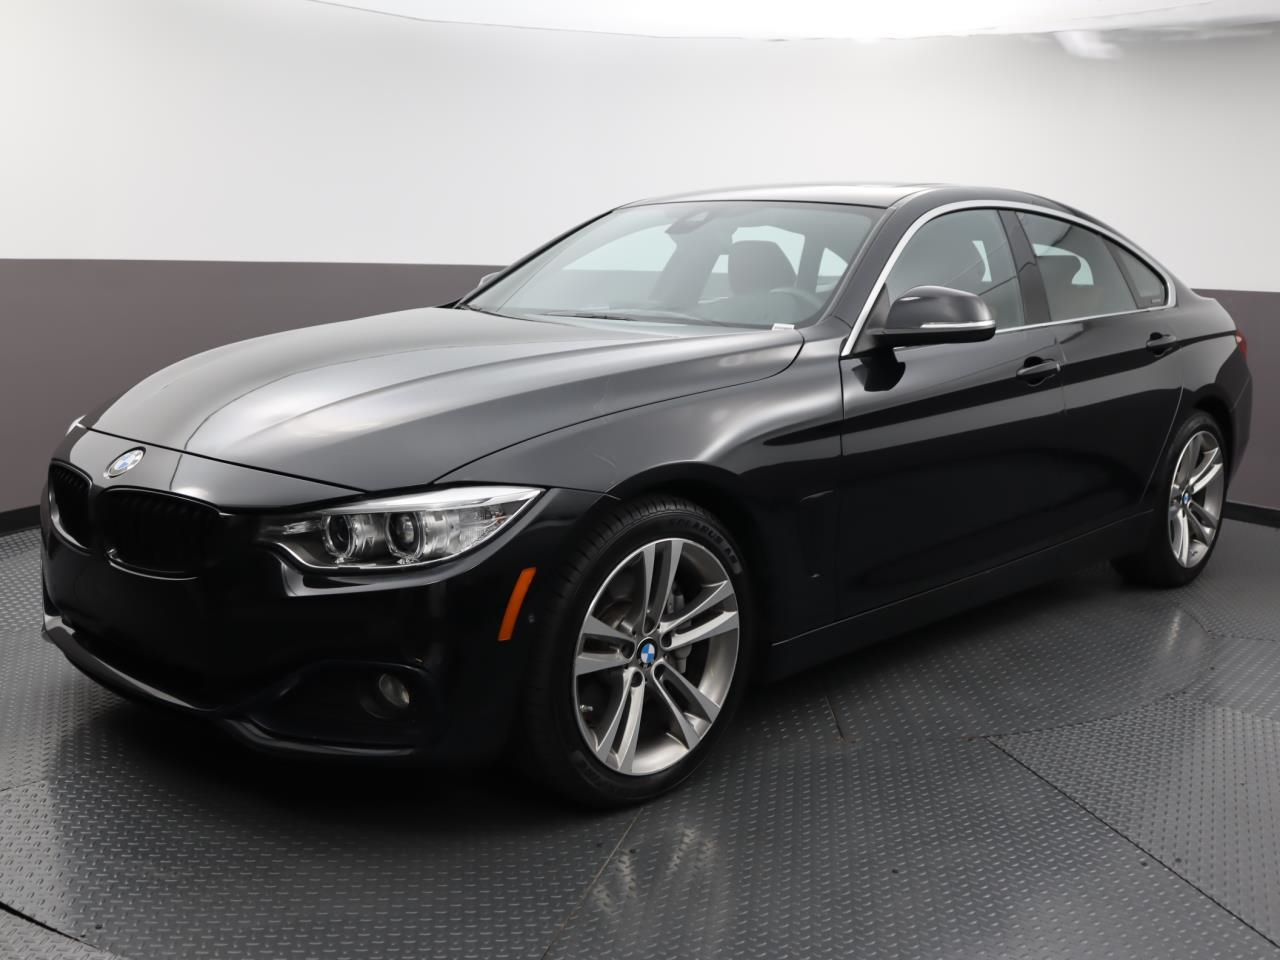 Used BMW 4-SERIES 2017 WEST PALM 440I